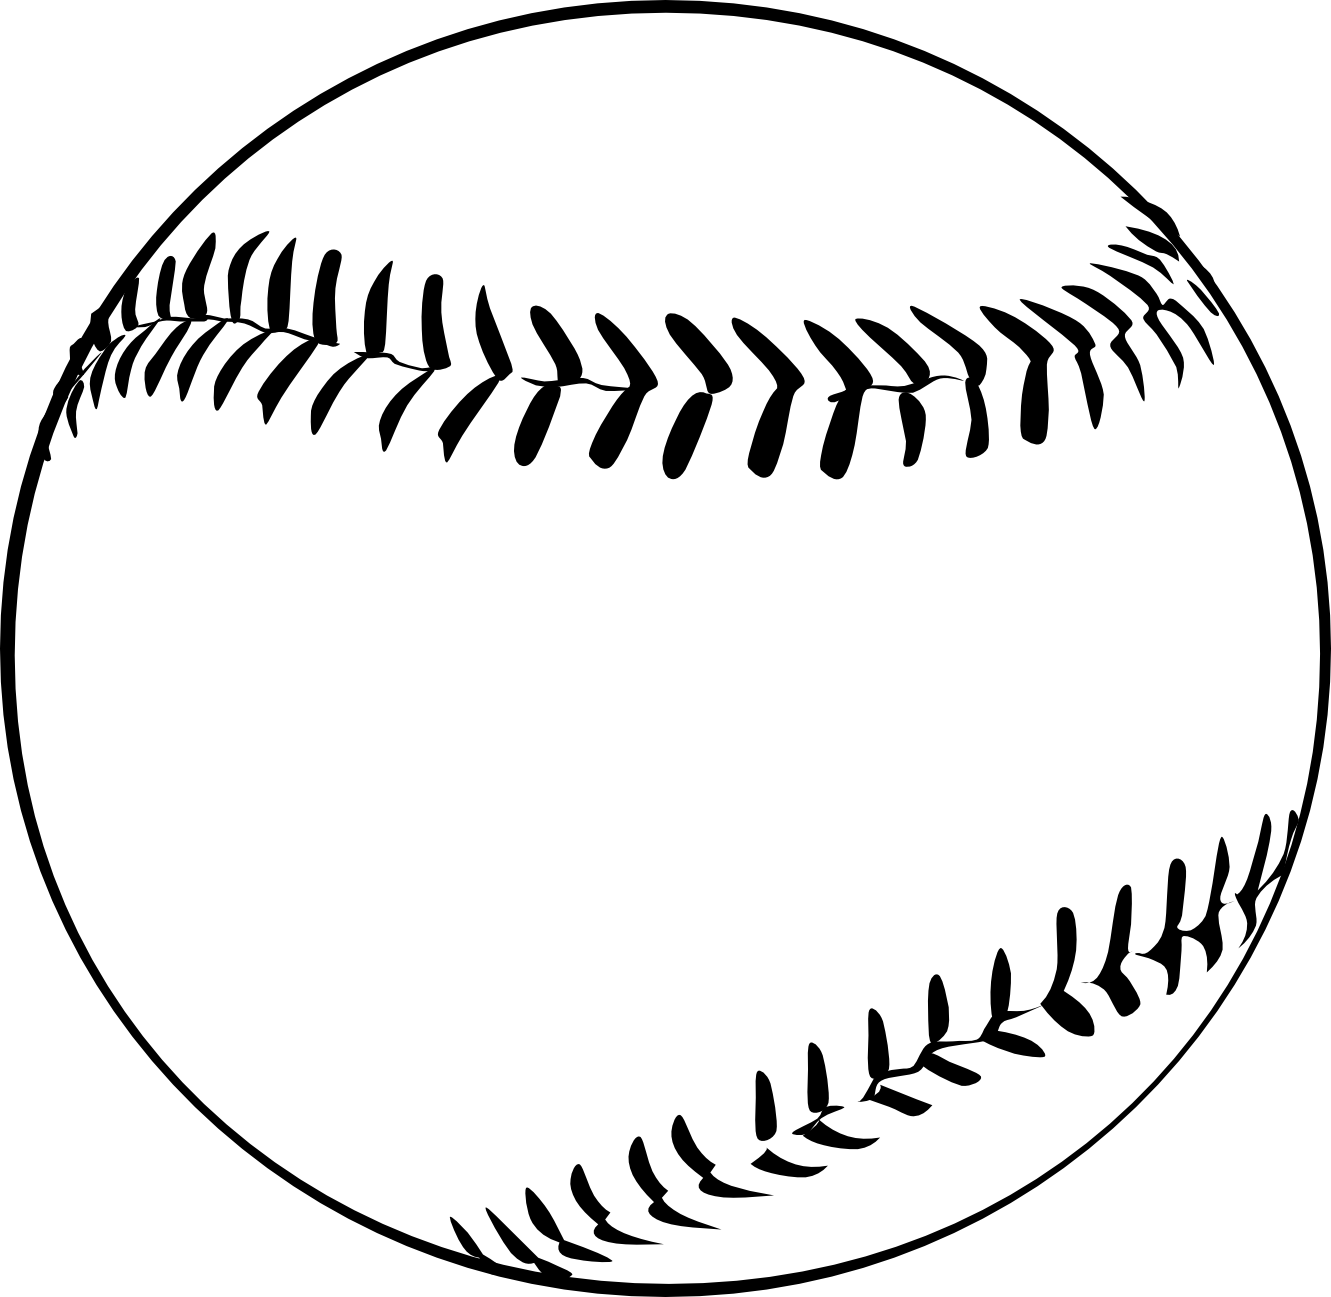 Baseball clipart black and white free images